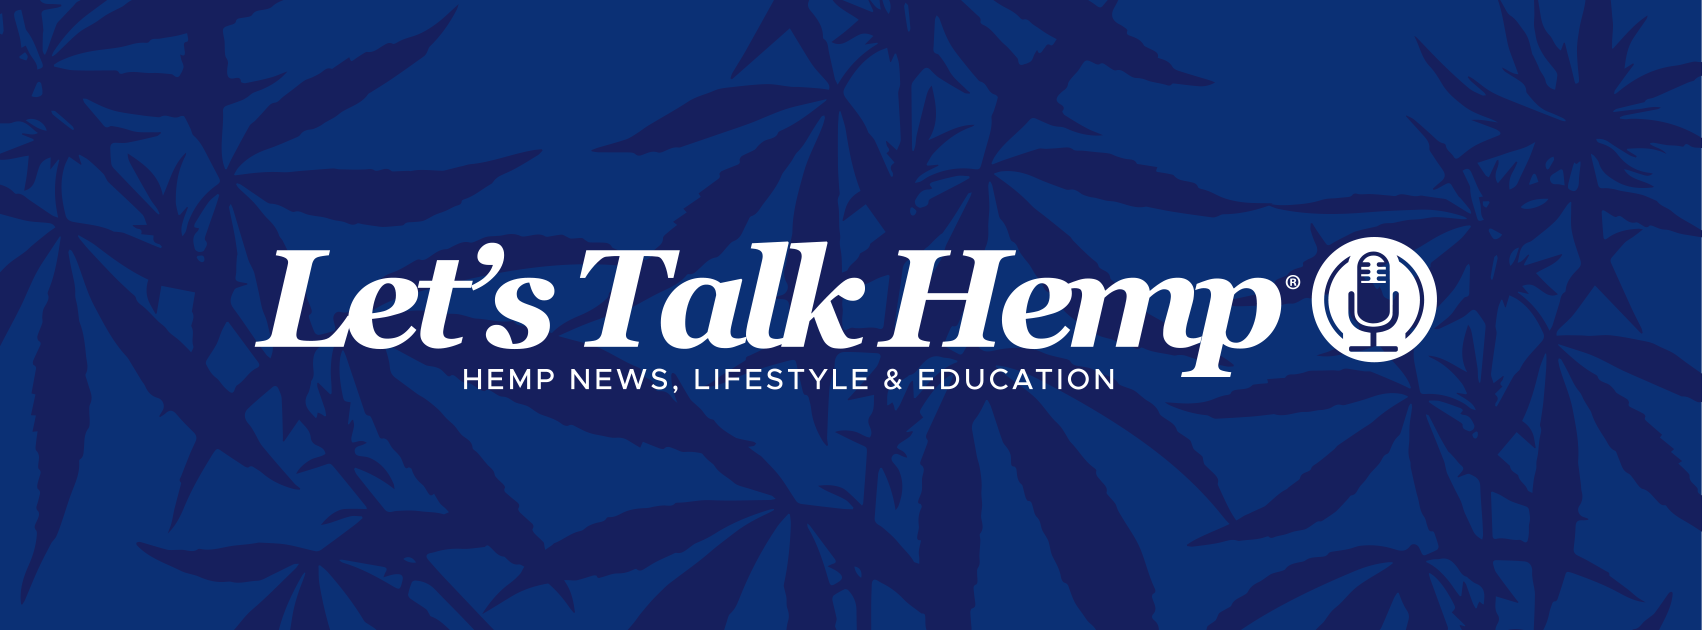 Let's Talk Hemp blue sponsor logo